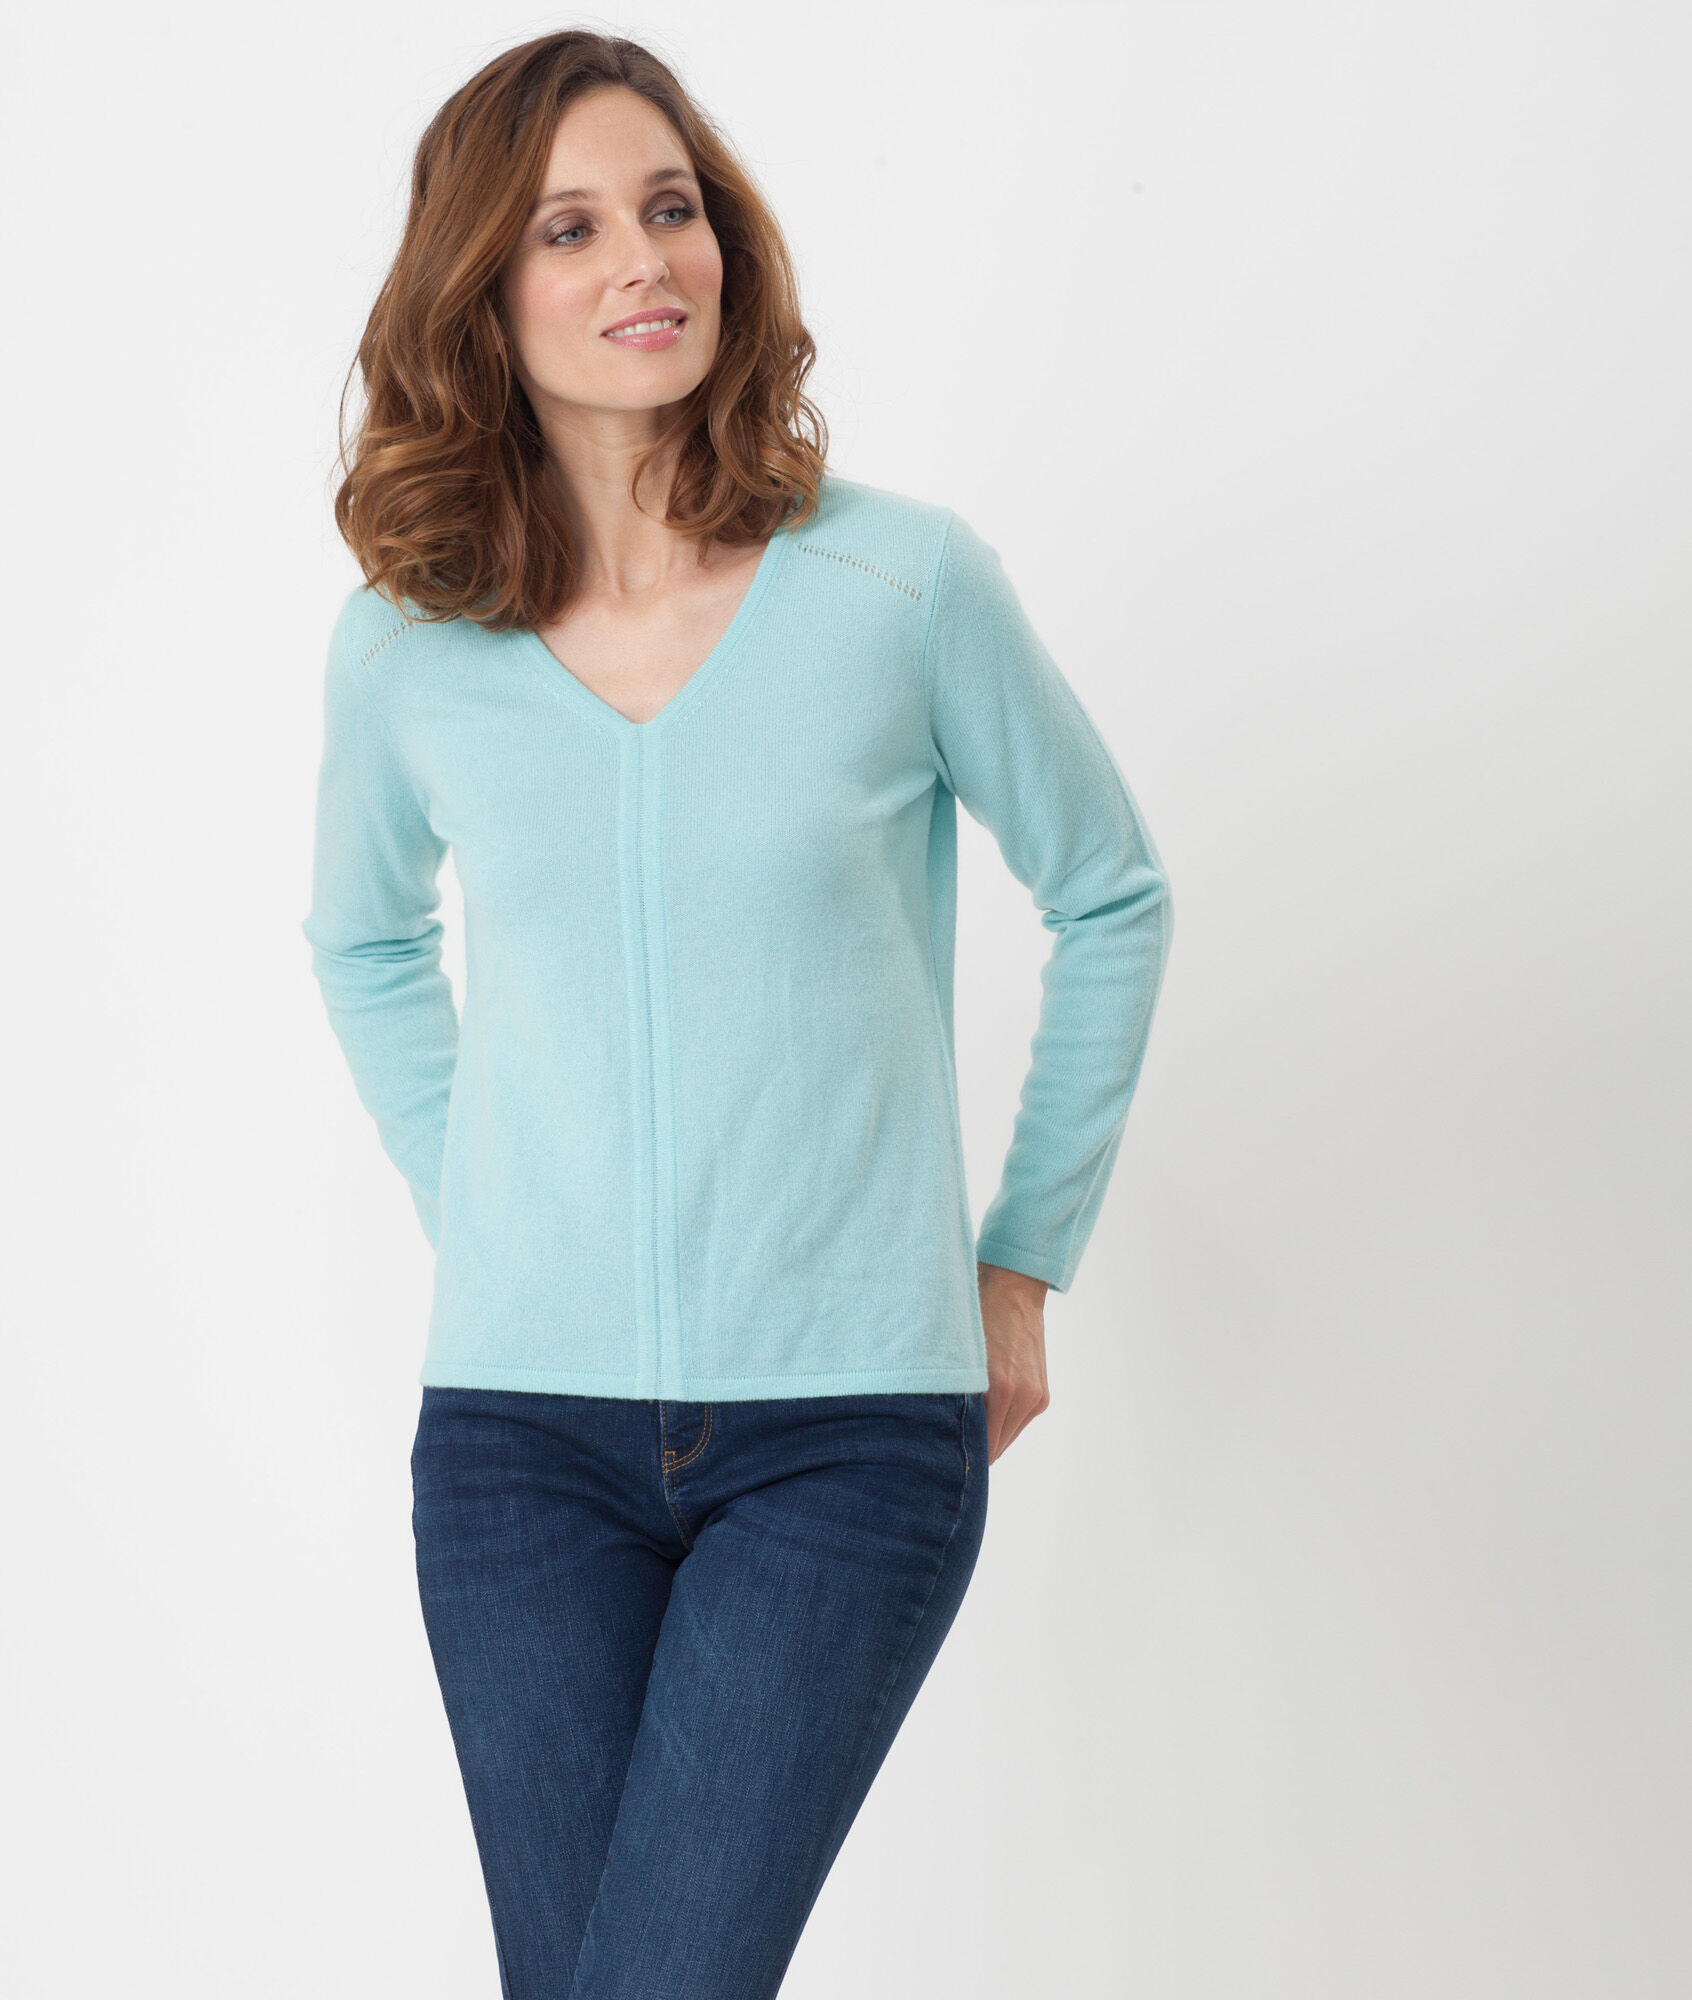 Heart turquoise cashmere sweater - 123